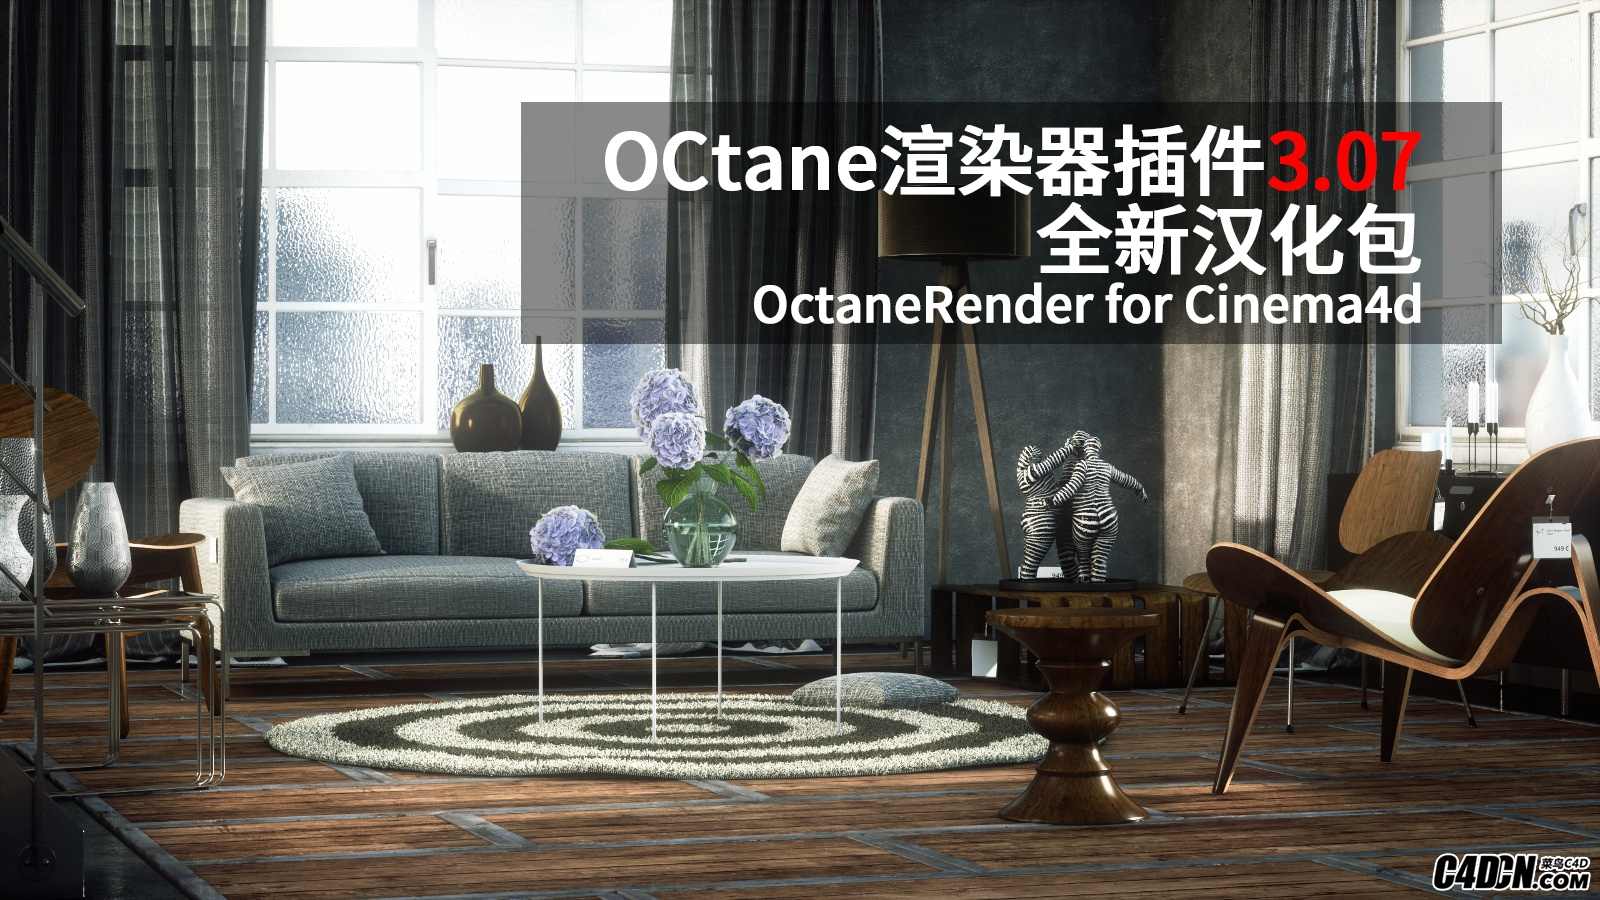 C4D插件 OCtane渲染器插件3.07全新汉化包 OctaneRender for Cinema4d